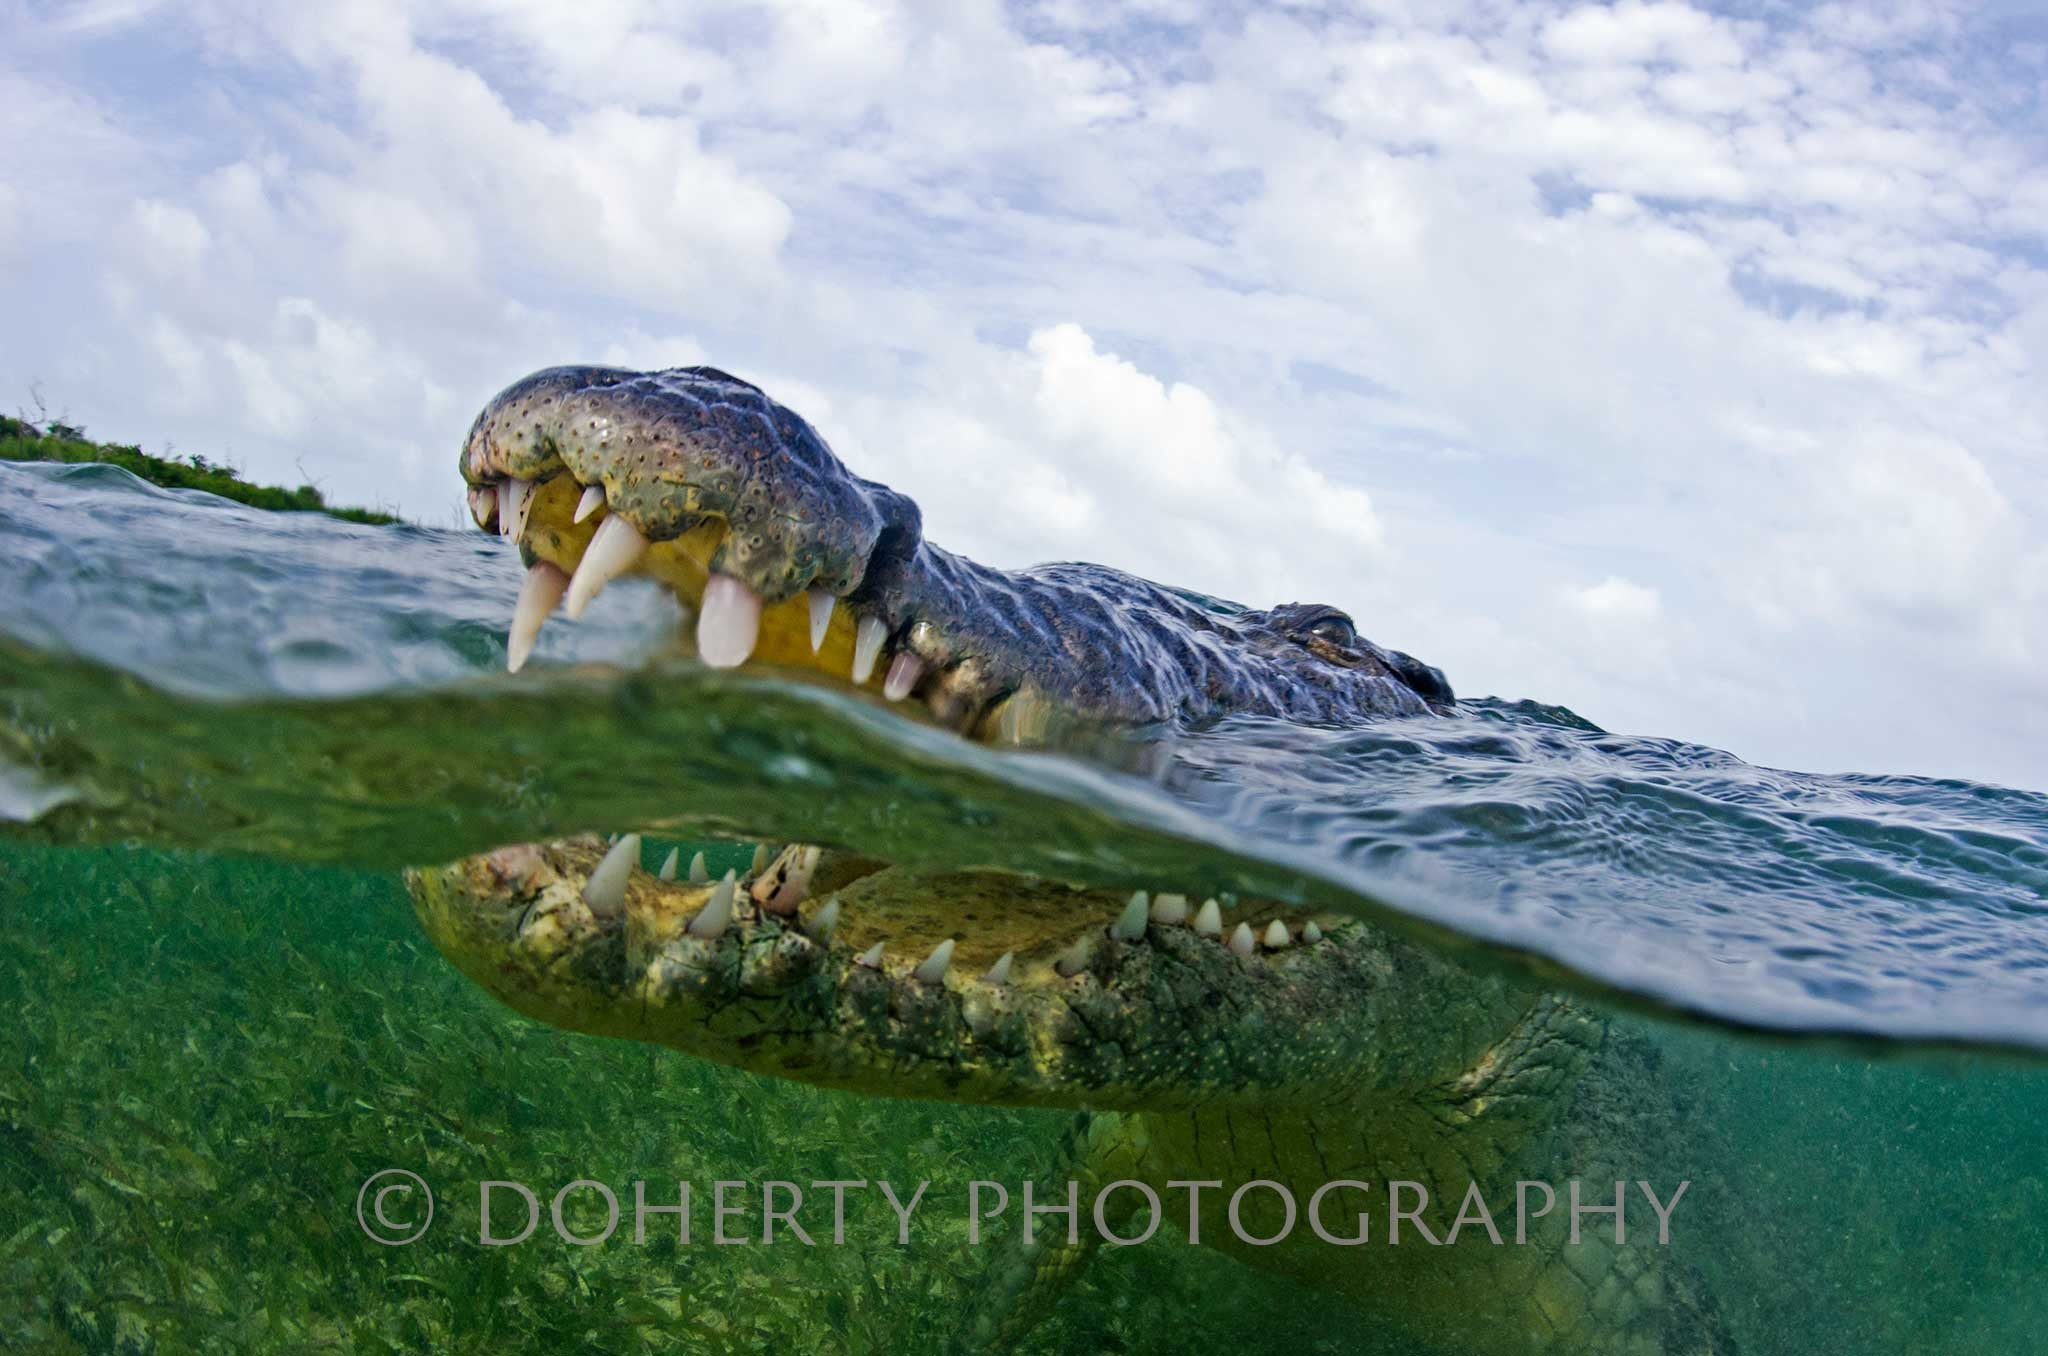 Crocodile Smile - Doherty Photography